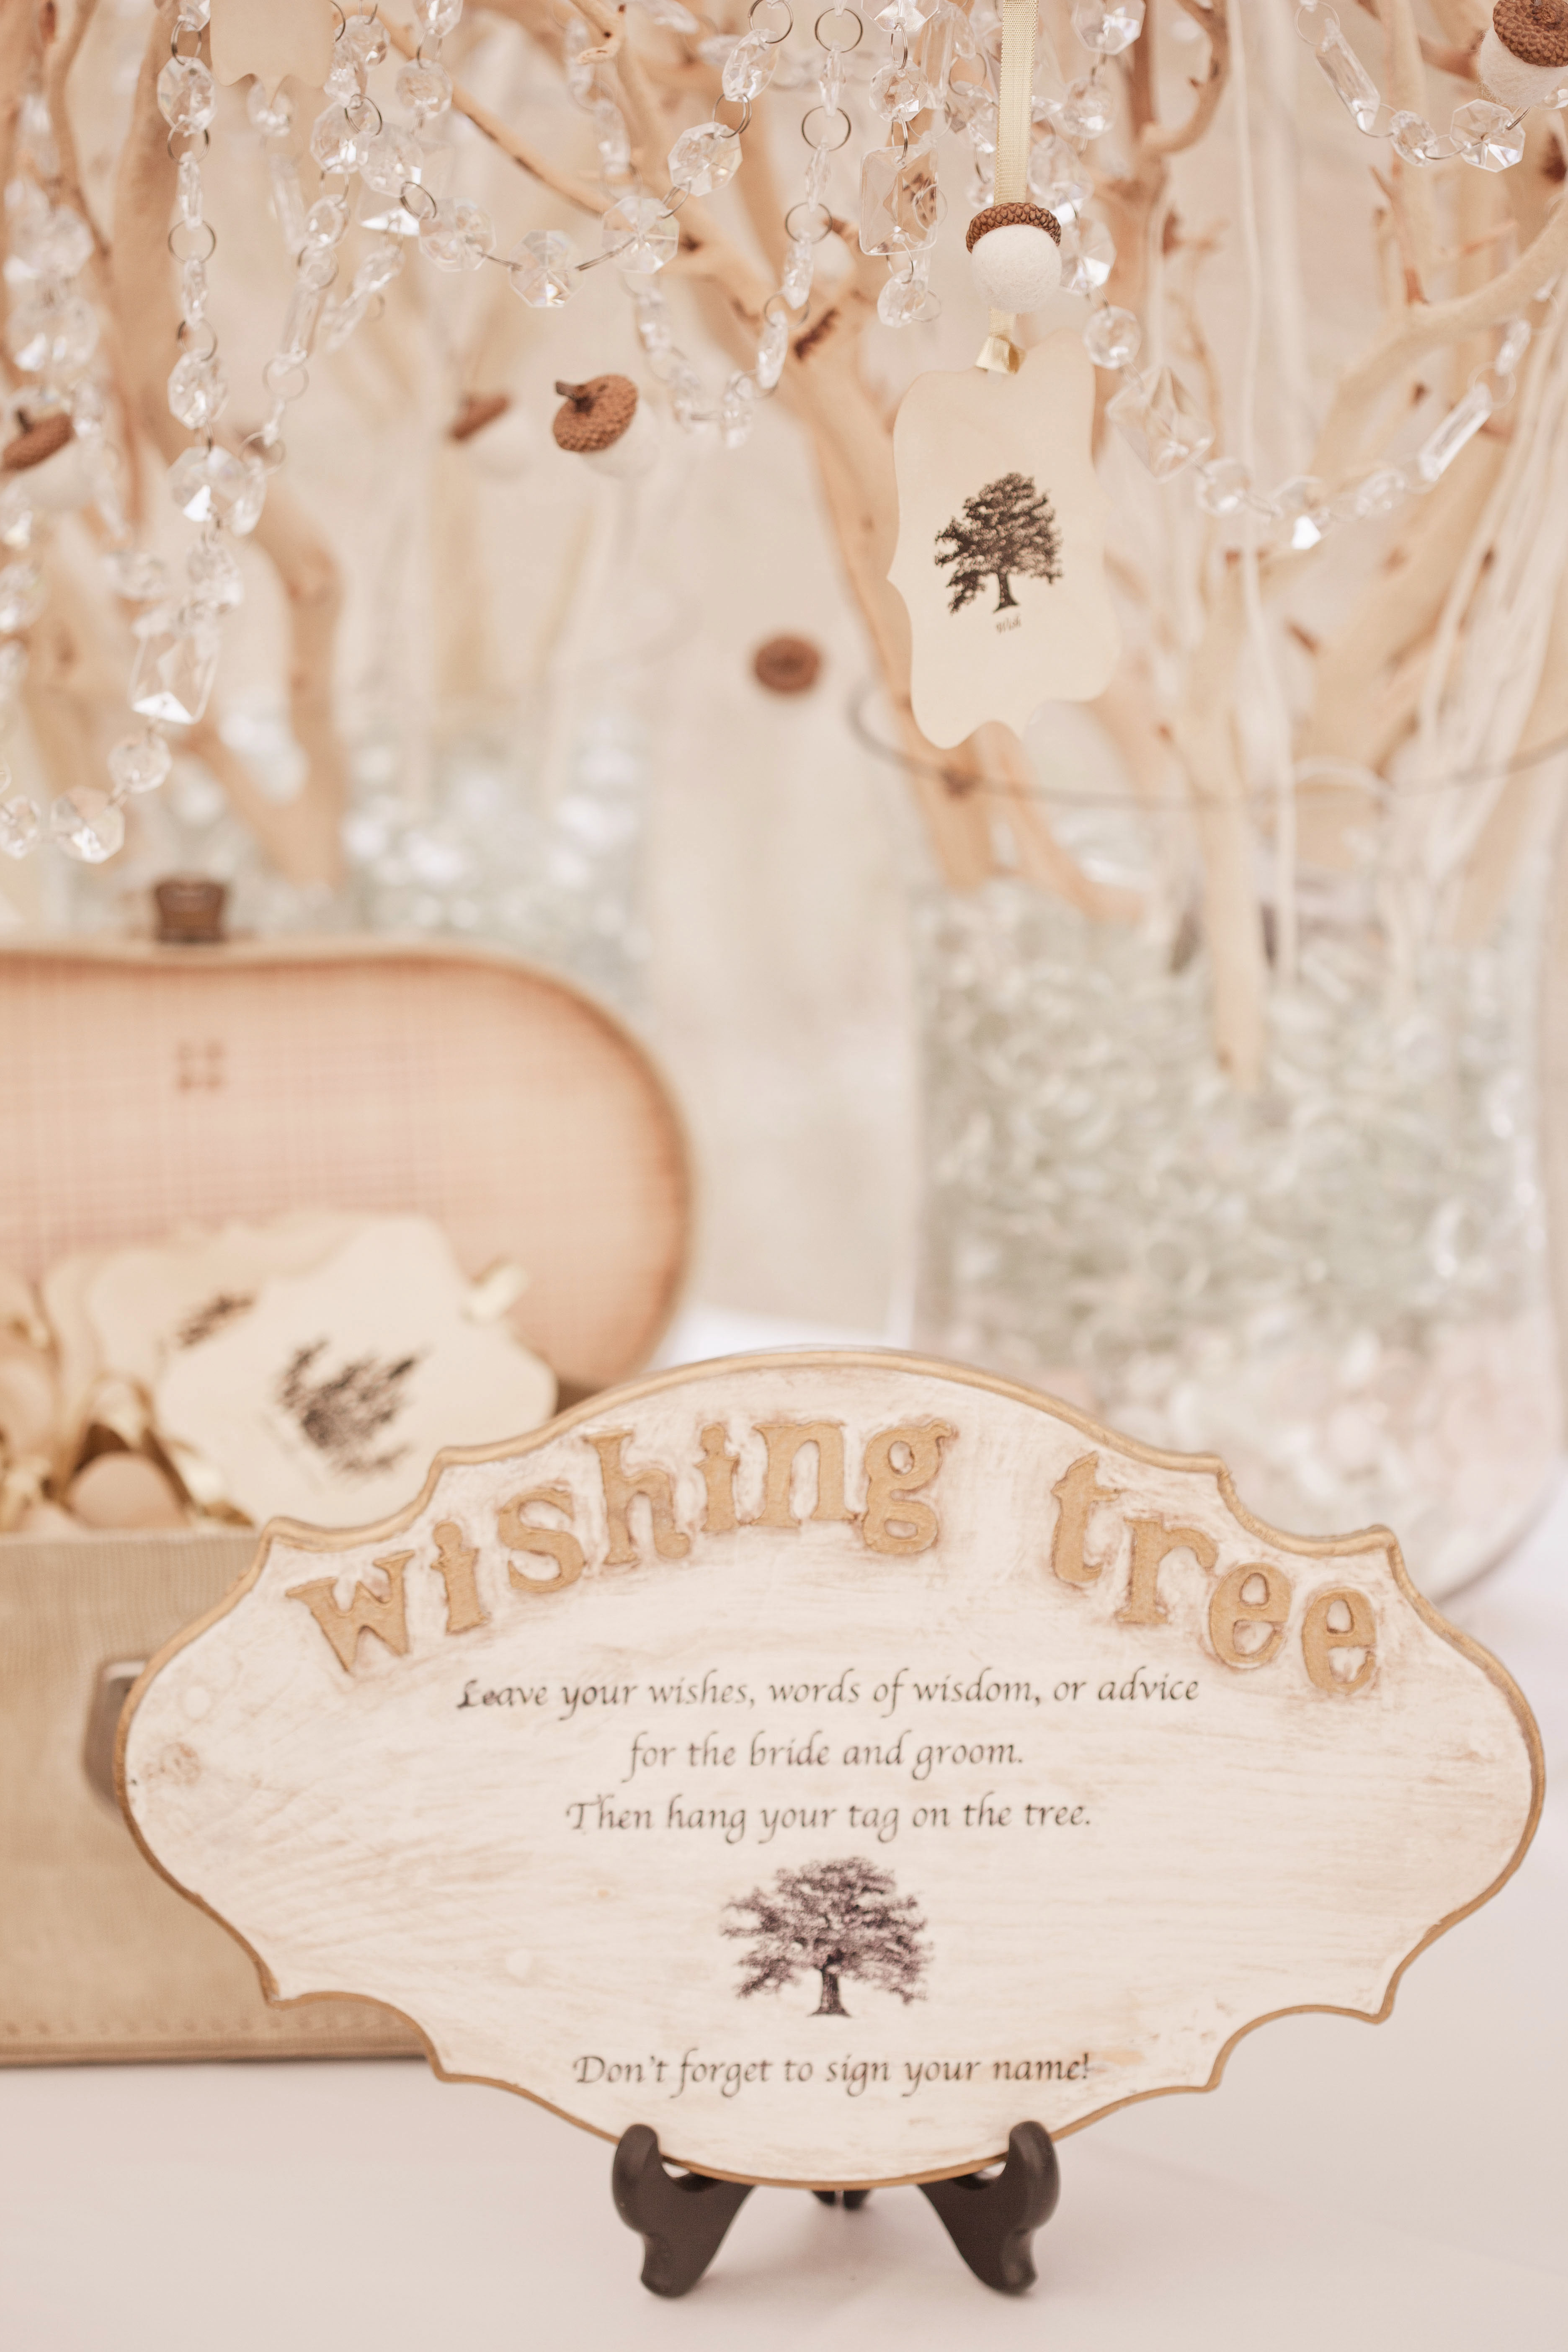 Wedding guest book alternative wishing tree with well wishes from guests